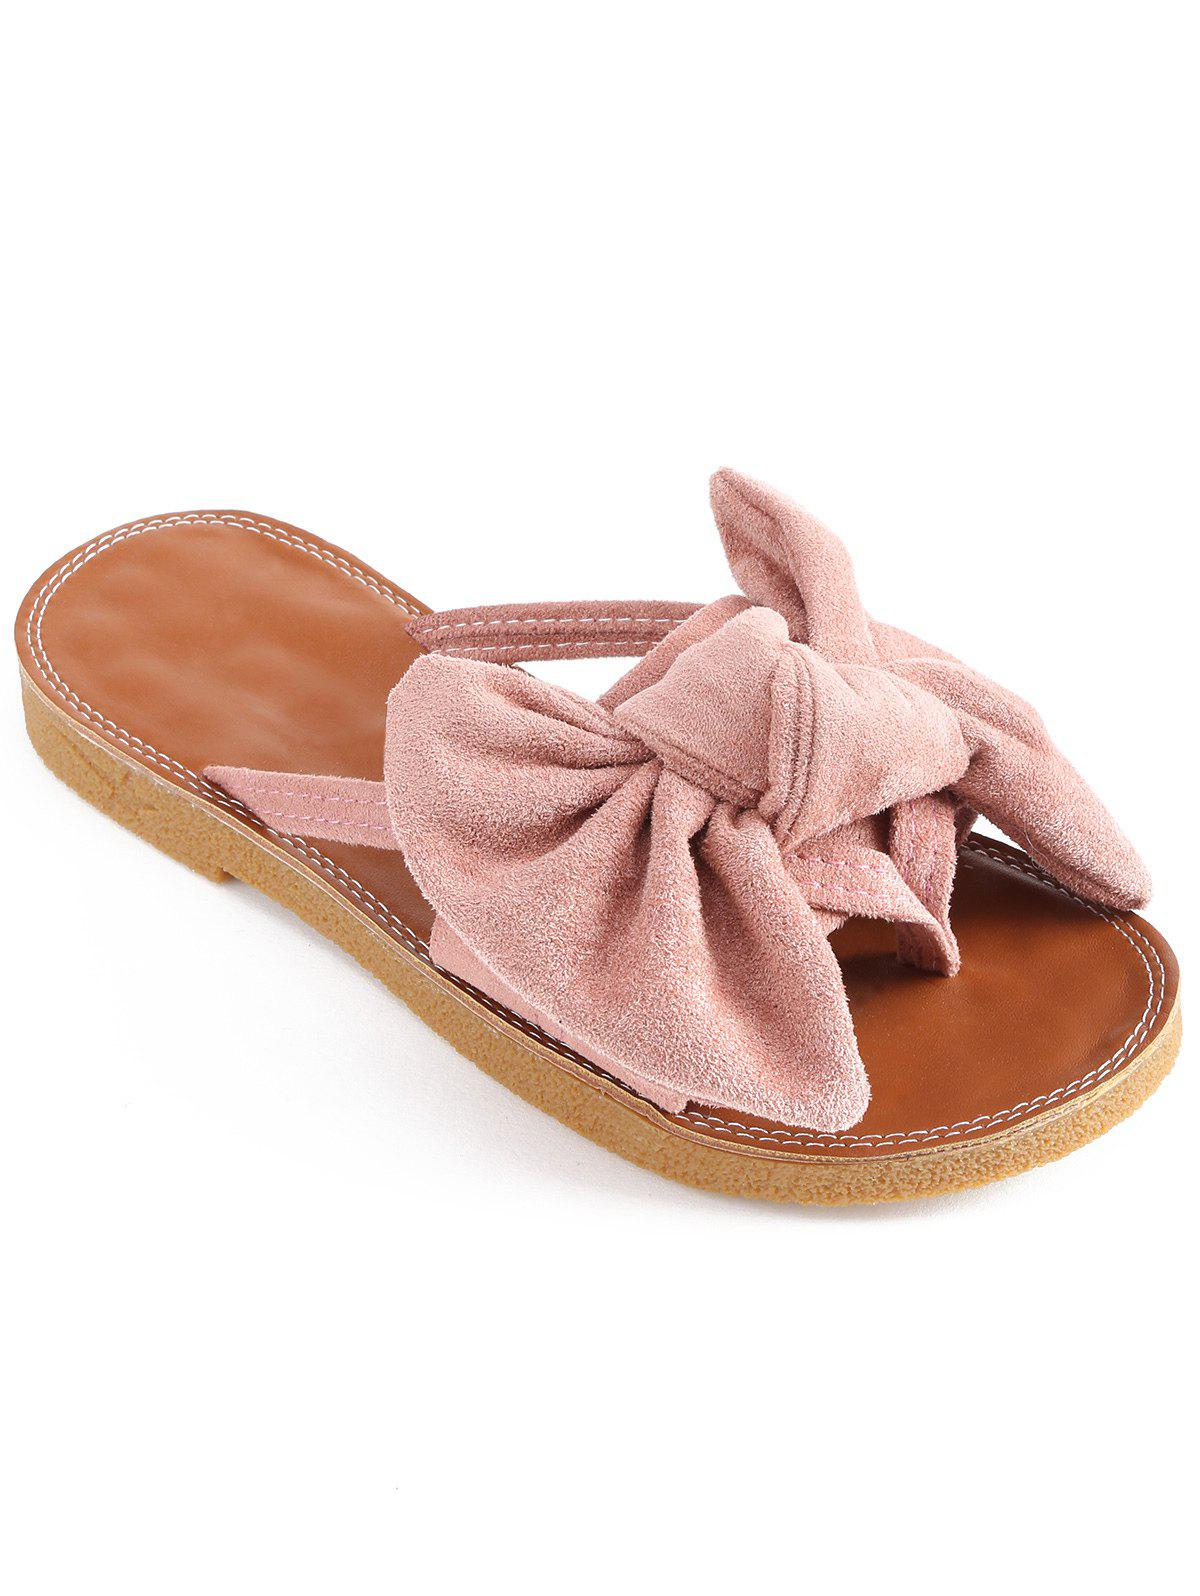 Outdoor Bowknot Embellished Slip On Shoes - LIGHT PINK 39